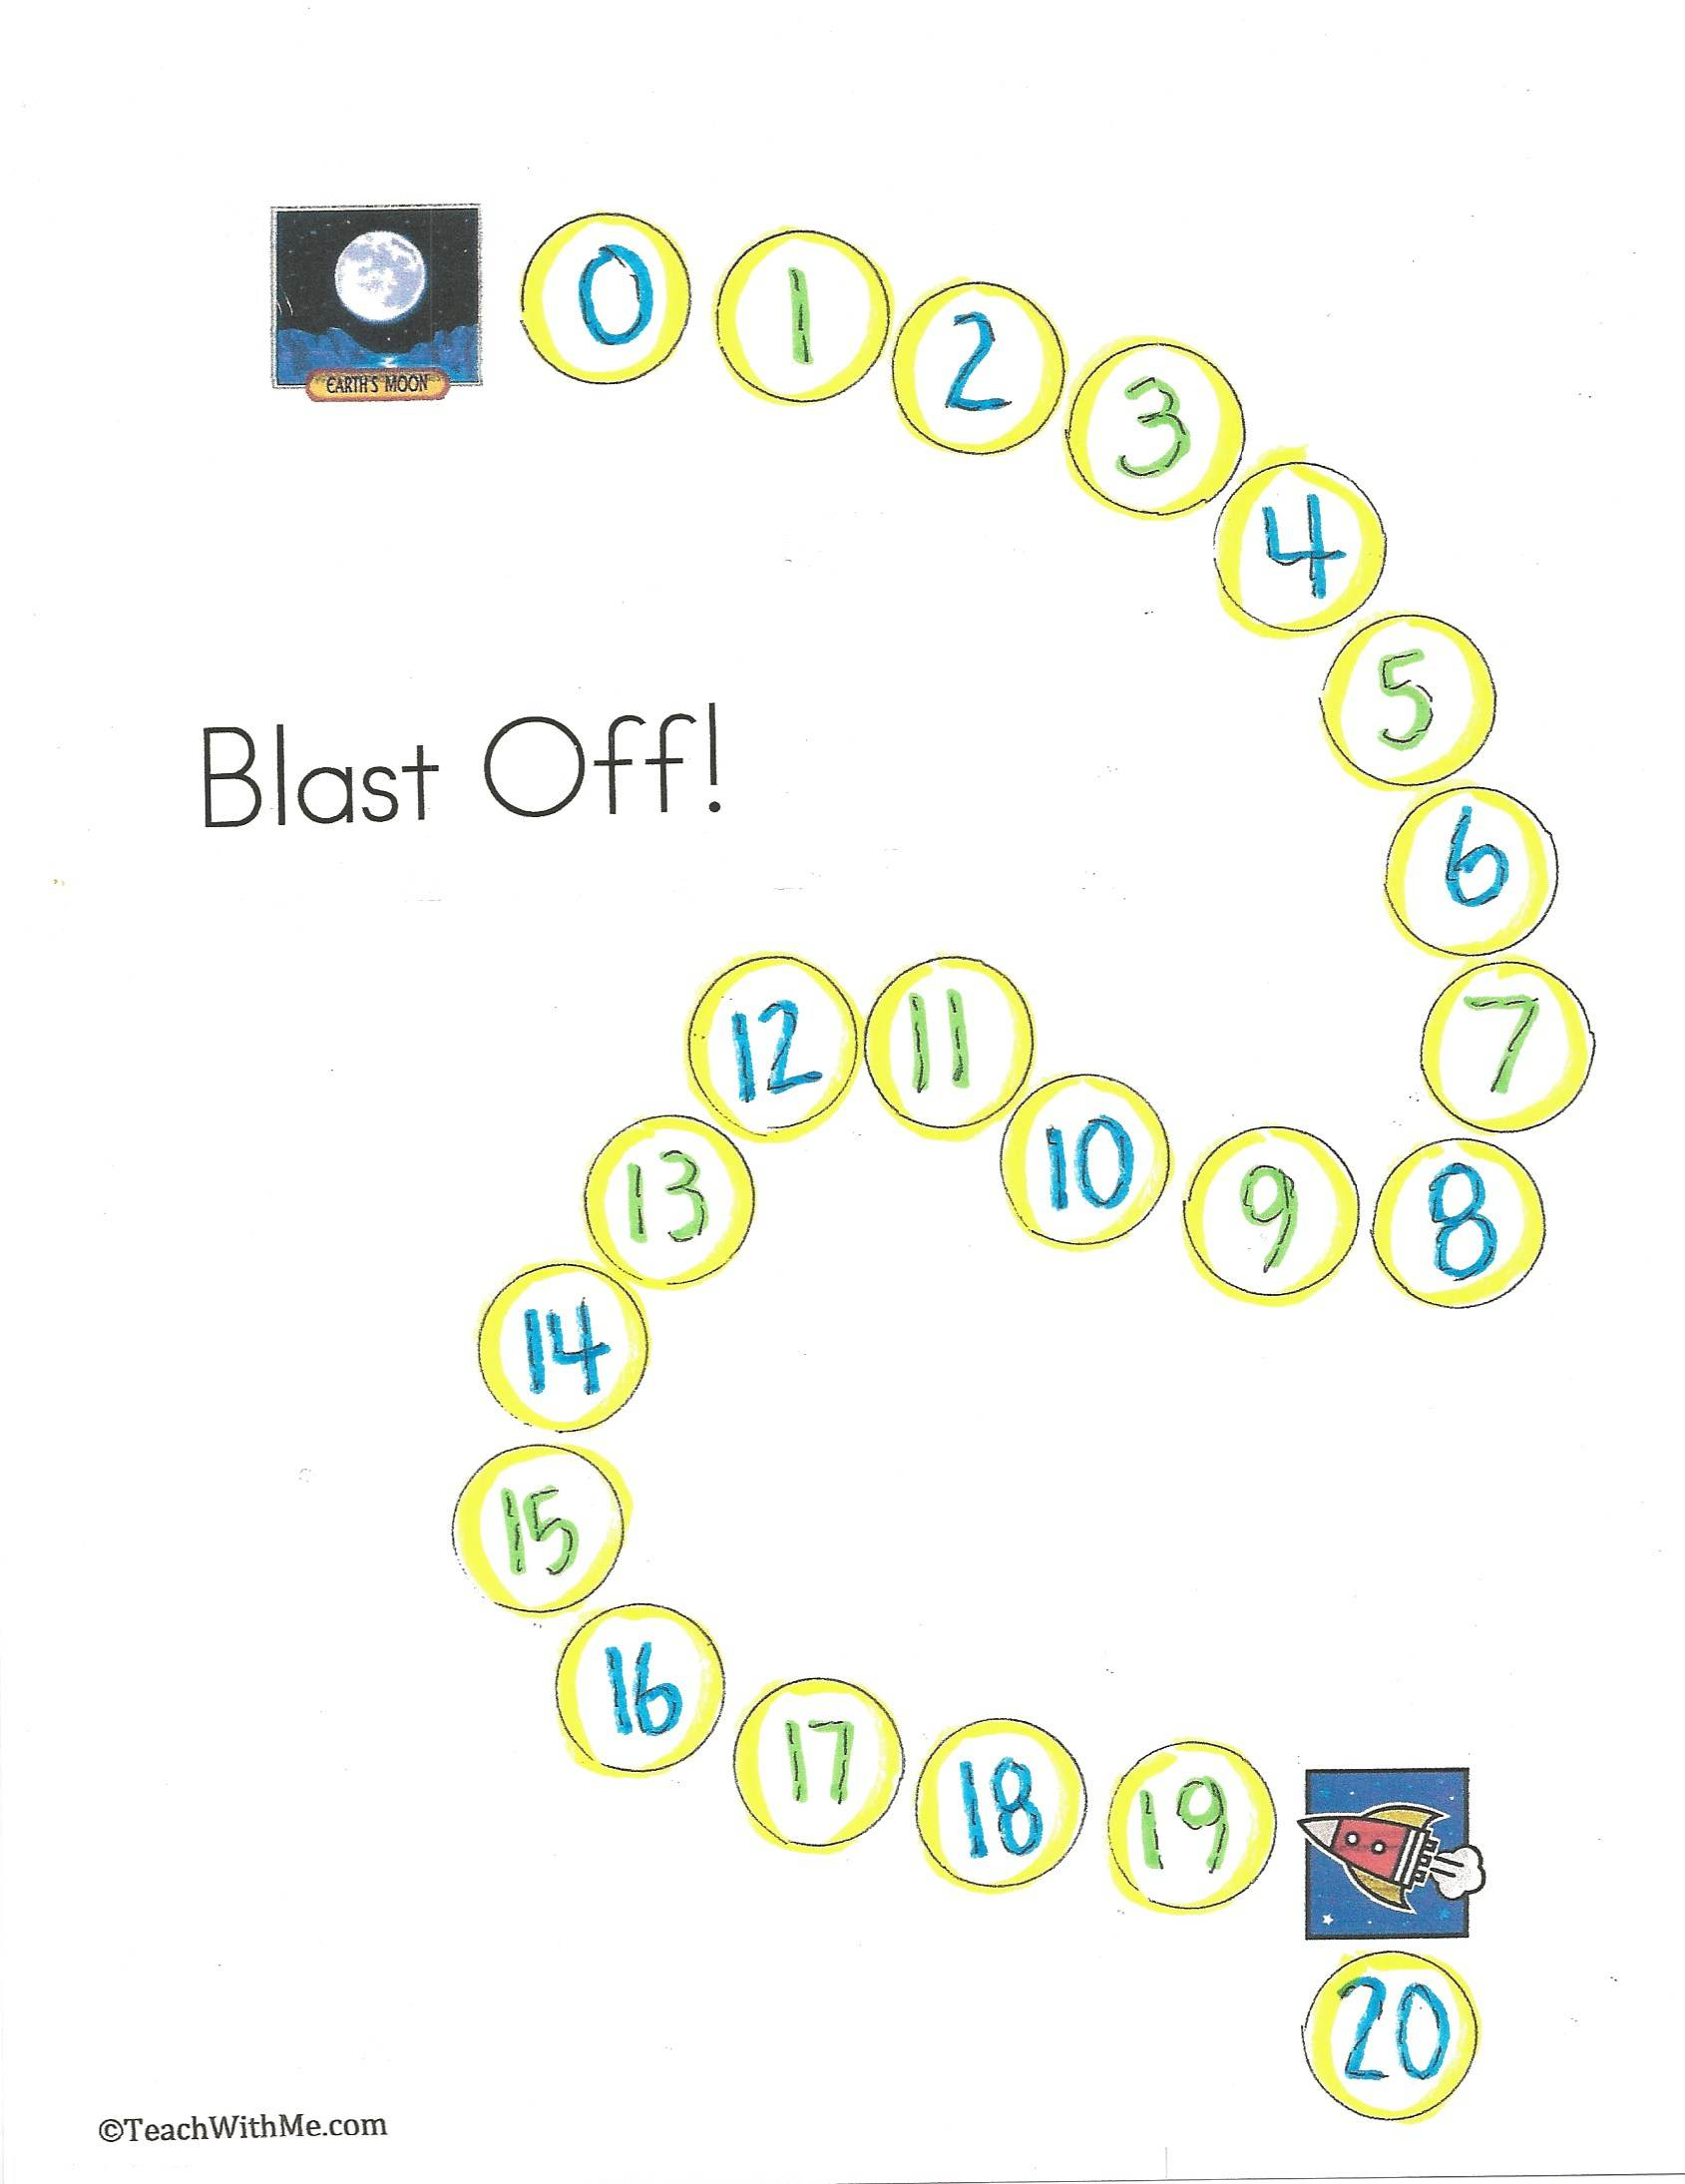 Blast off game, learning to count backwards, counting backwards from 20 to 0, counting backwards from 10 to 0, blast off activities, blast off ideas, blast off lessons, blast off booklet,